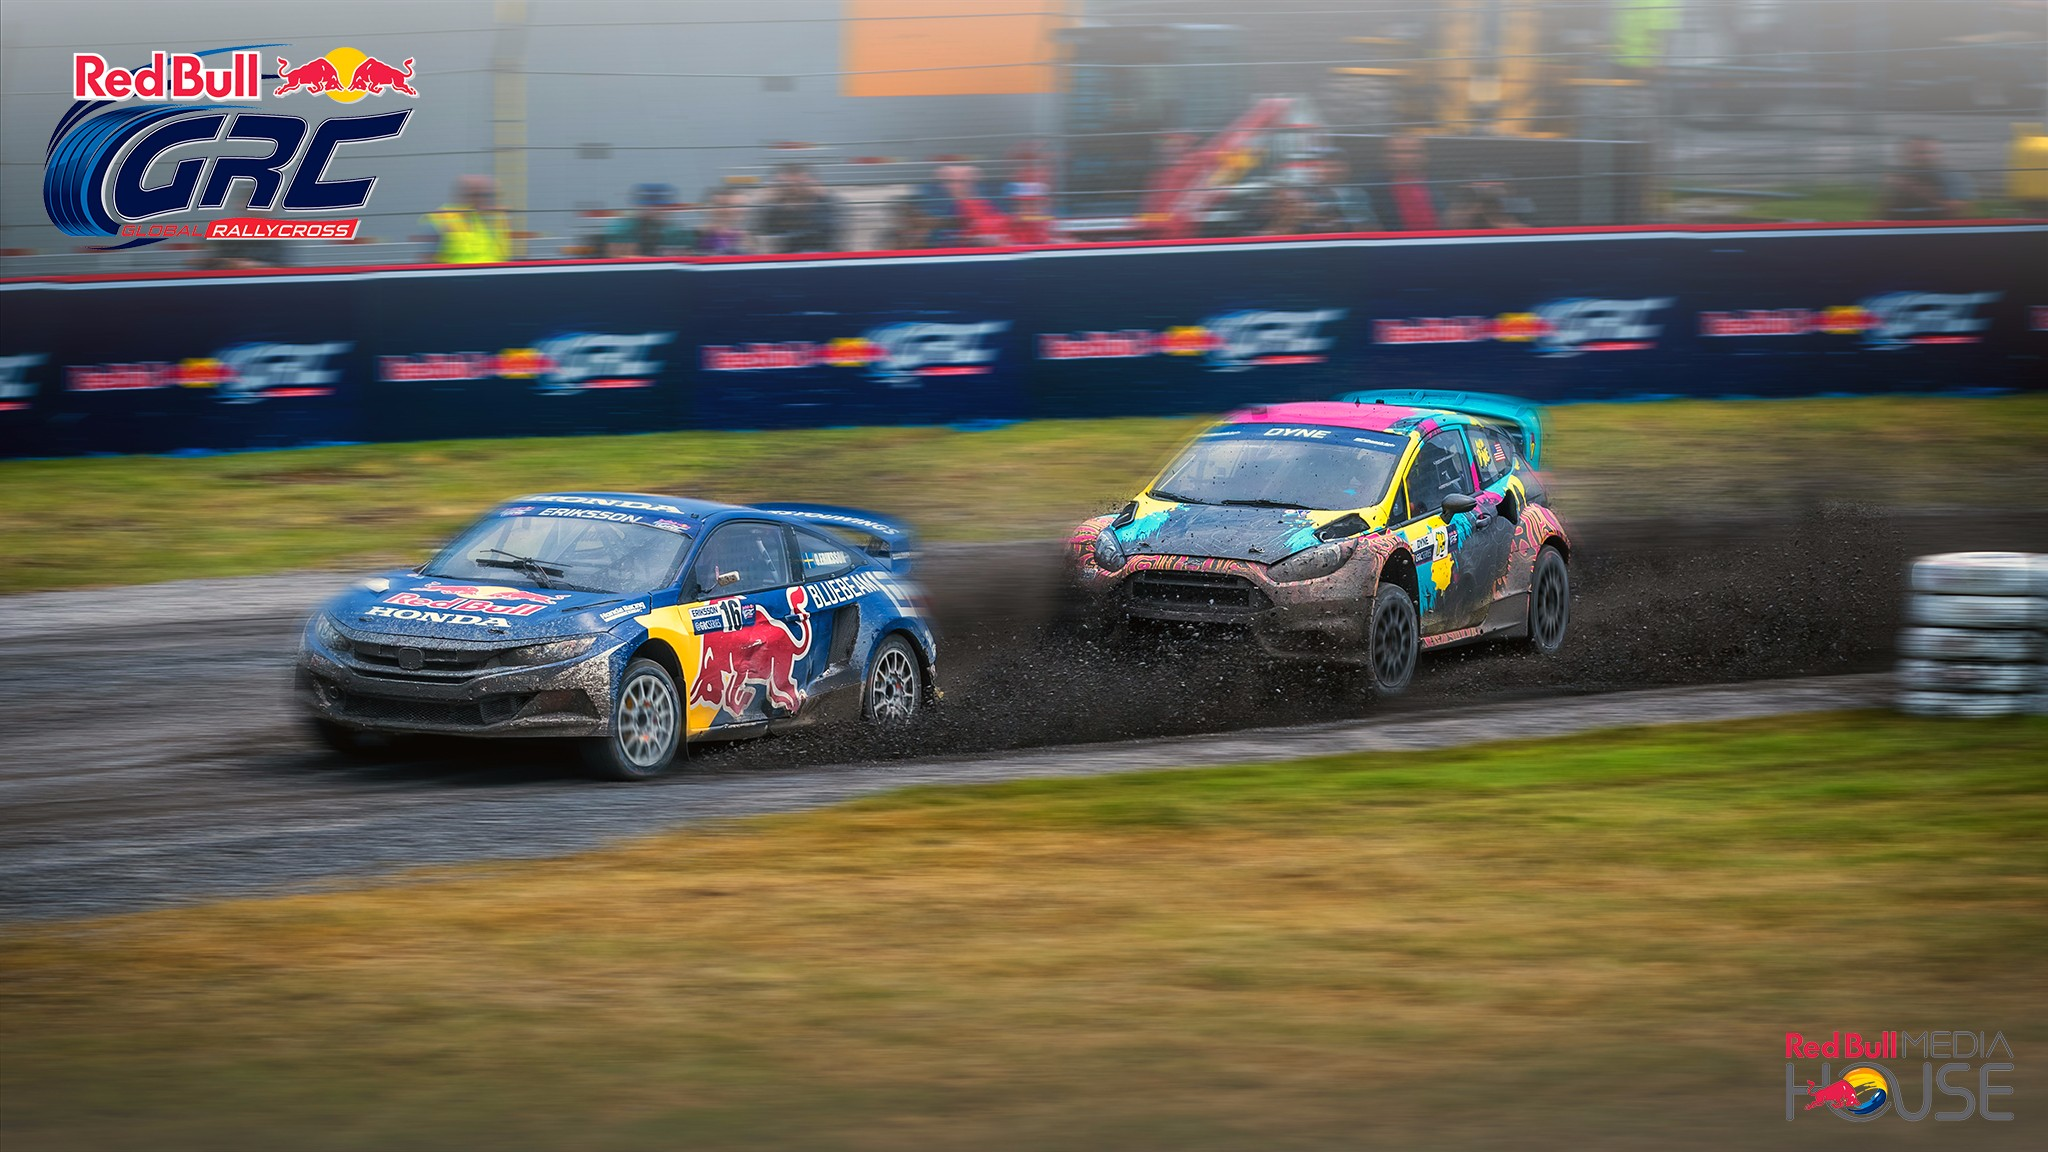 Redbull_grc_covers_17_2048